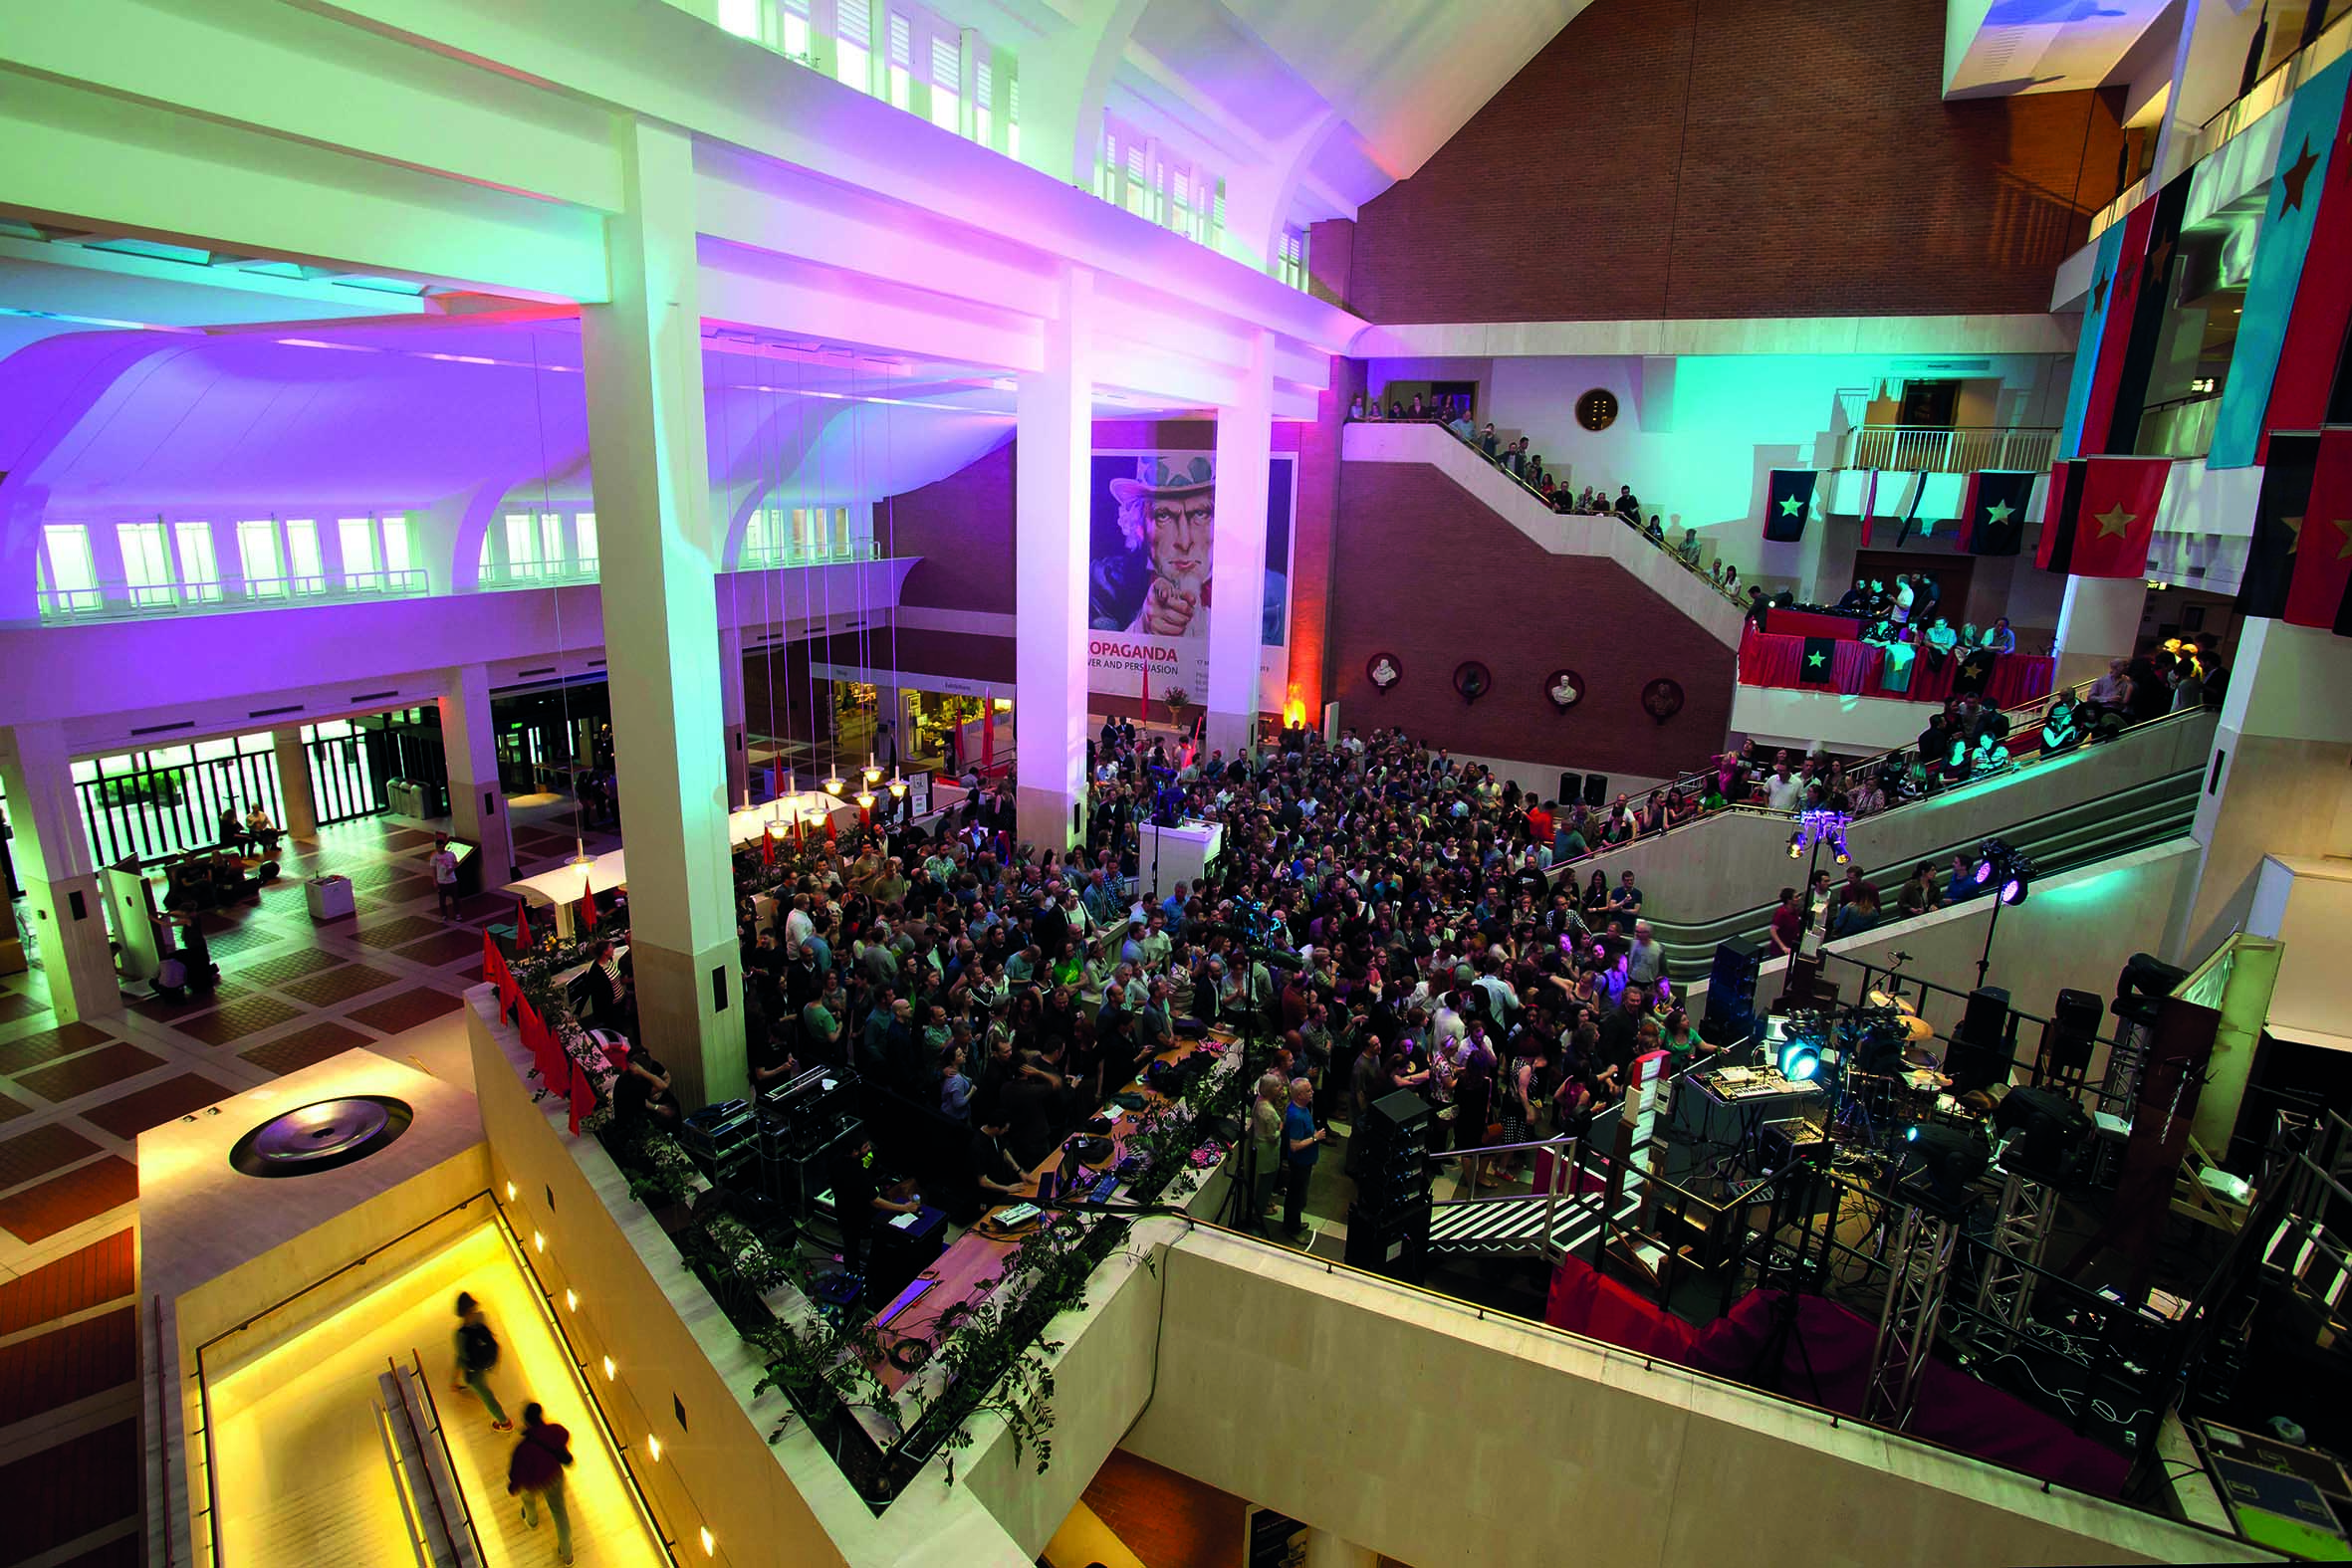 Events at the British Library